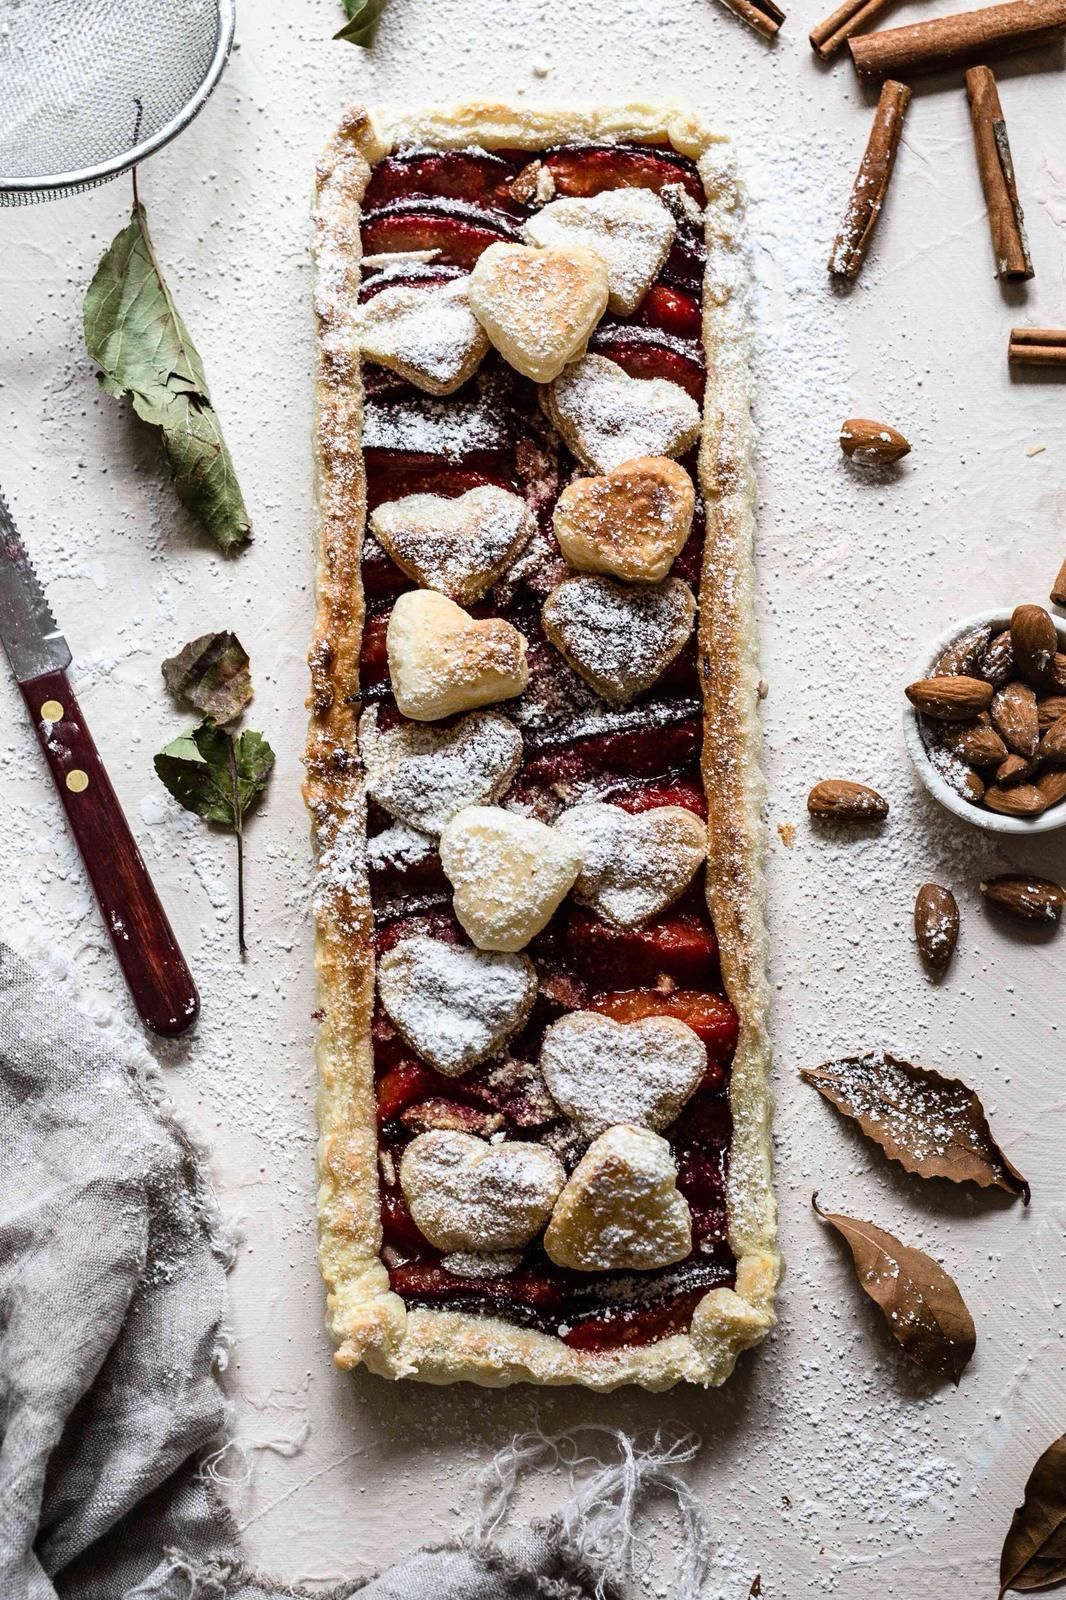 Weihnachtsgebäck 2019.Winter Cake With Plums Almonds And Cinammon Topped With Poudersugar